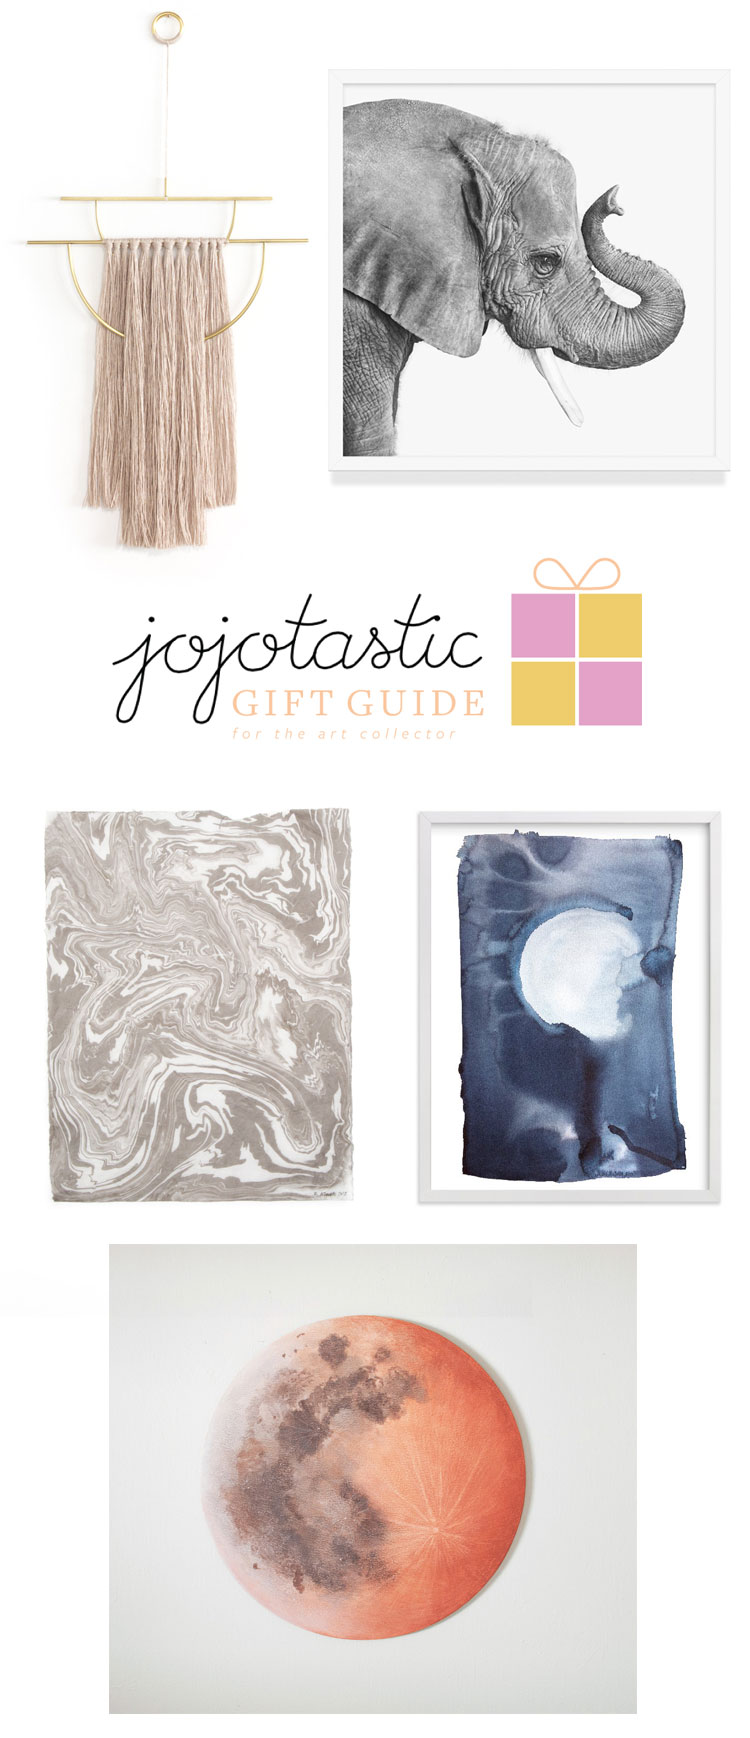 the ultimate gift guide for the art collector, art connoisseur, or just anyone who loves to hang unique kinds of art in their home! Shop the full gift guide on Jojotastic.com